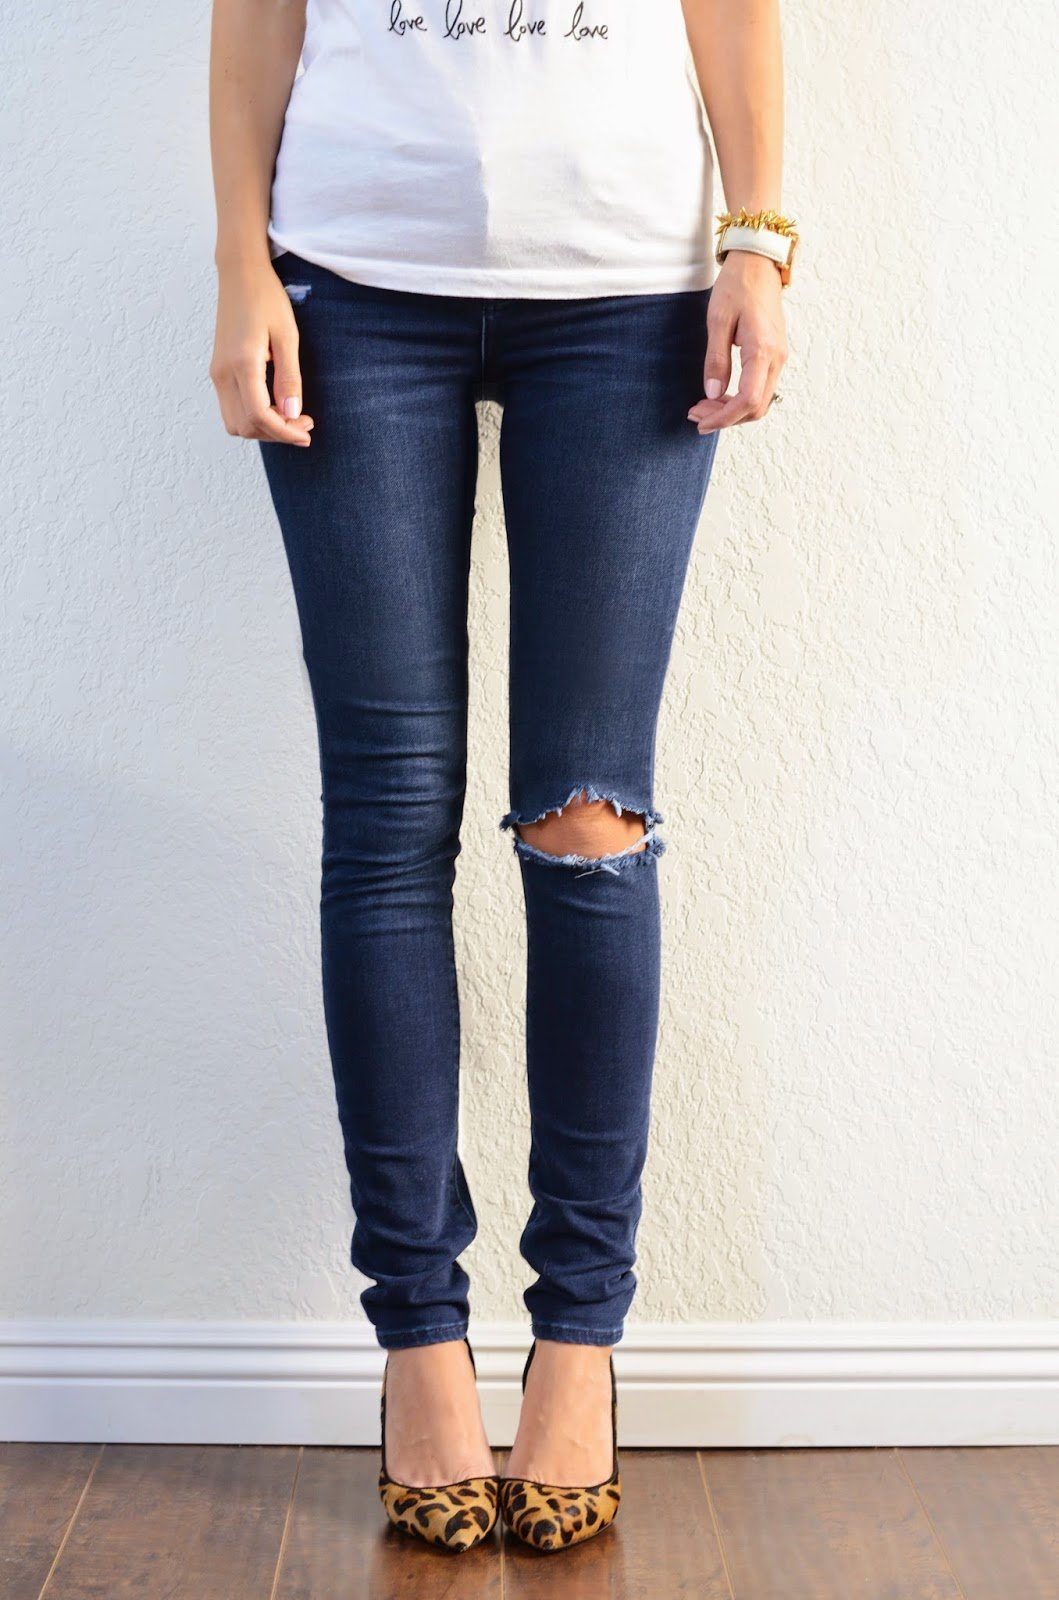 3802222328a DIY FRIDAY QUICK FIX: HEMMING JEANS (+ KEEPING THE ORIGINAL HEM ...